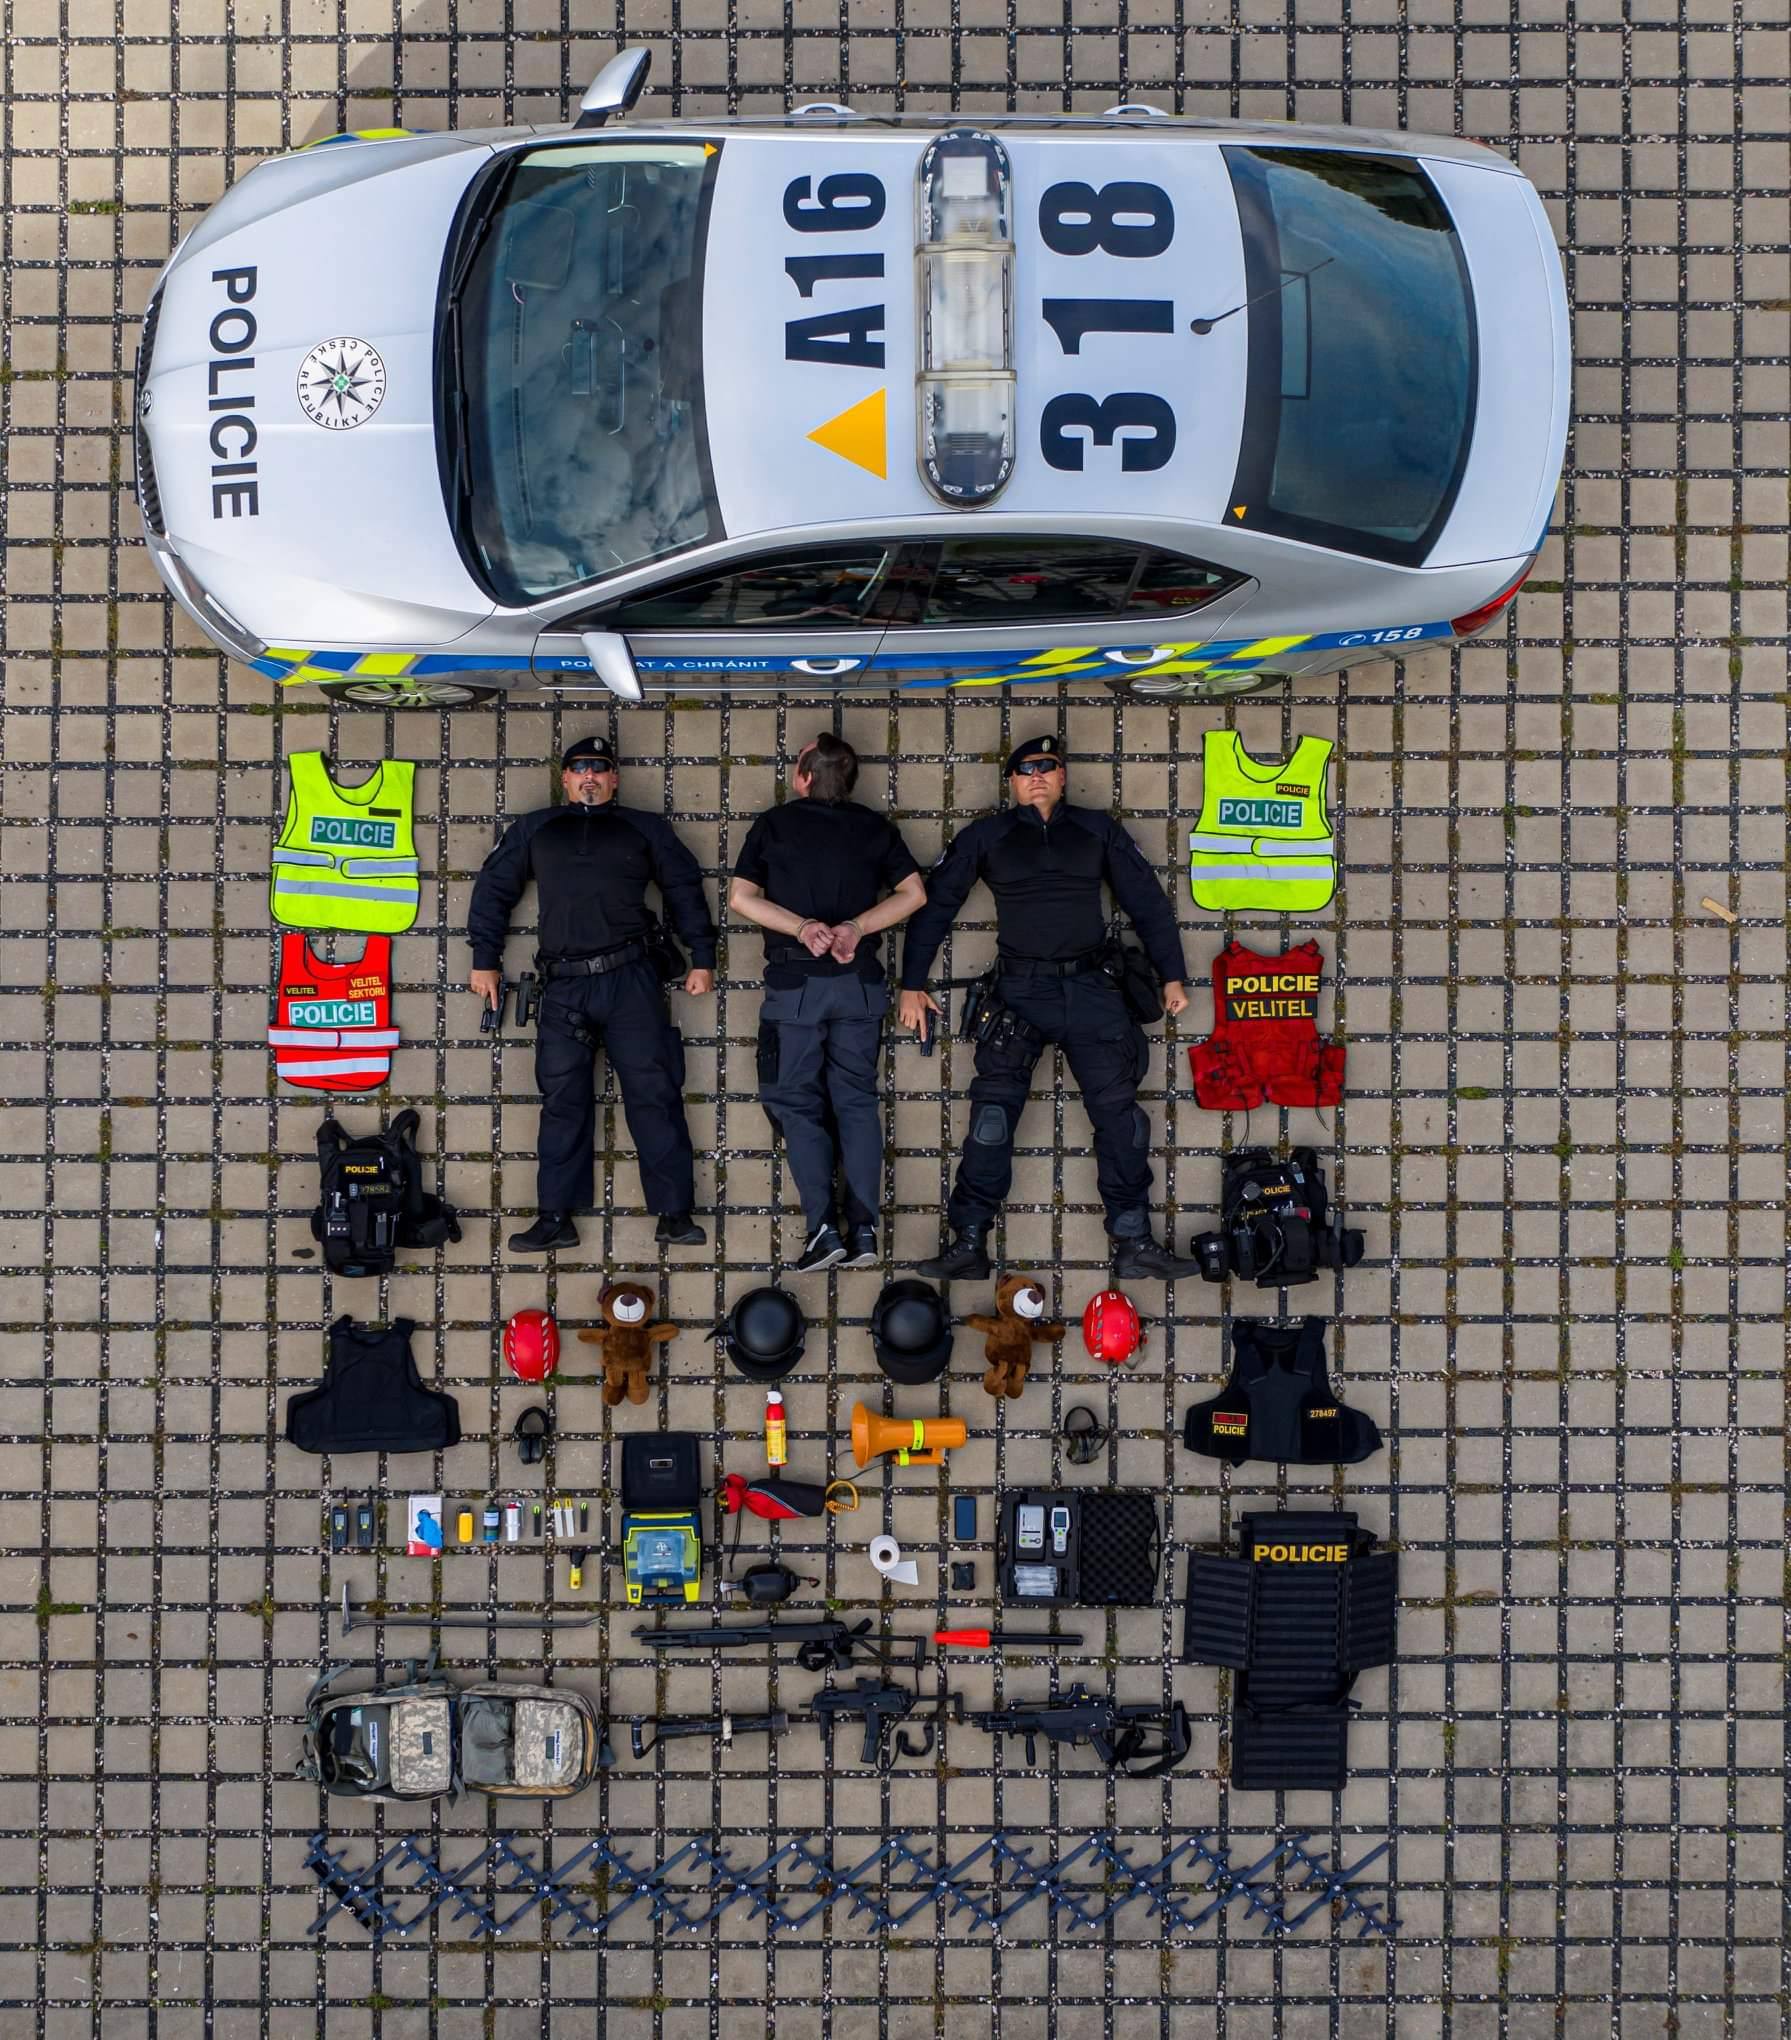 People 1791x2040 photography car police police cars men uniform vest top view bird's eye view tiles Czech Republic czech gun outdoors police men humor vehicle numbers